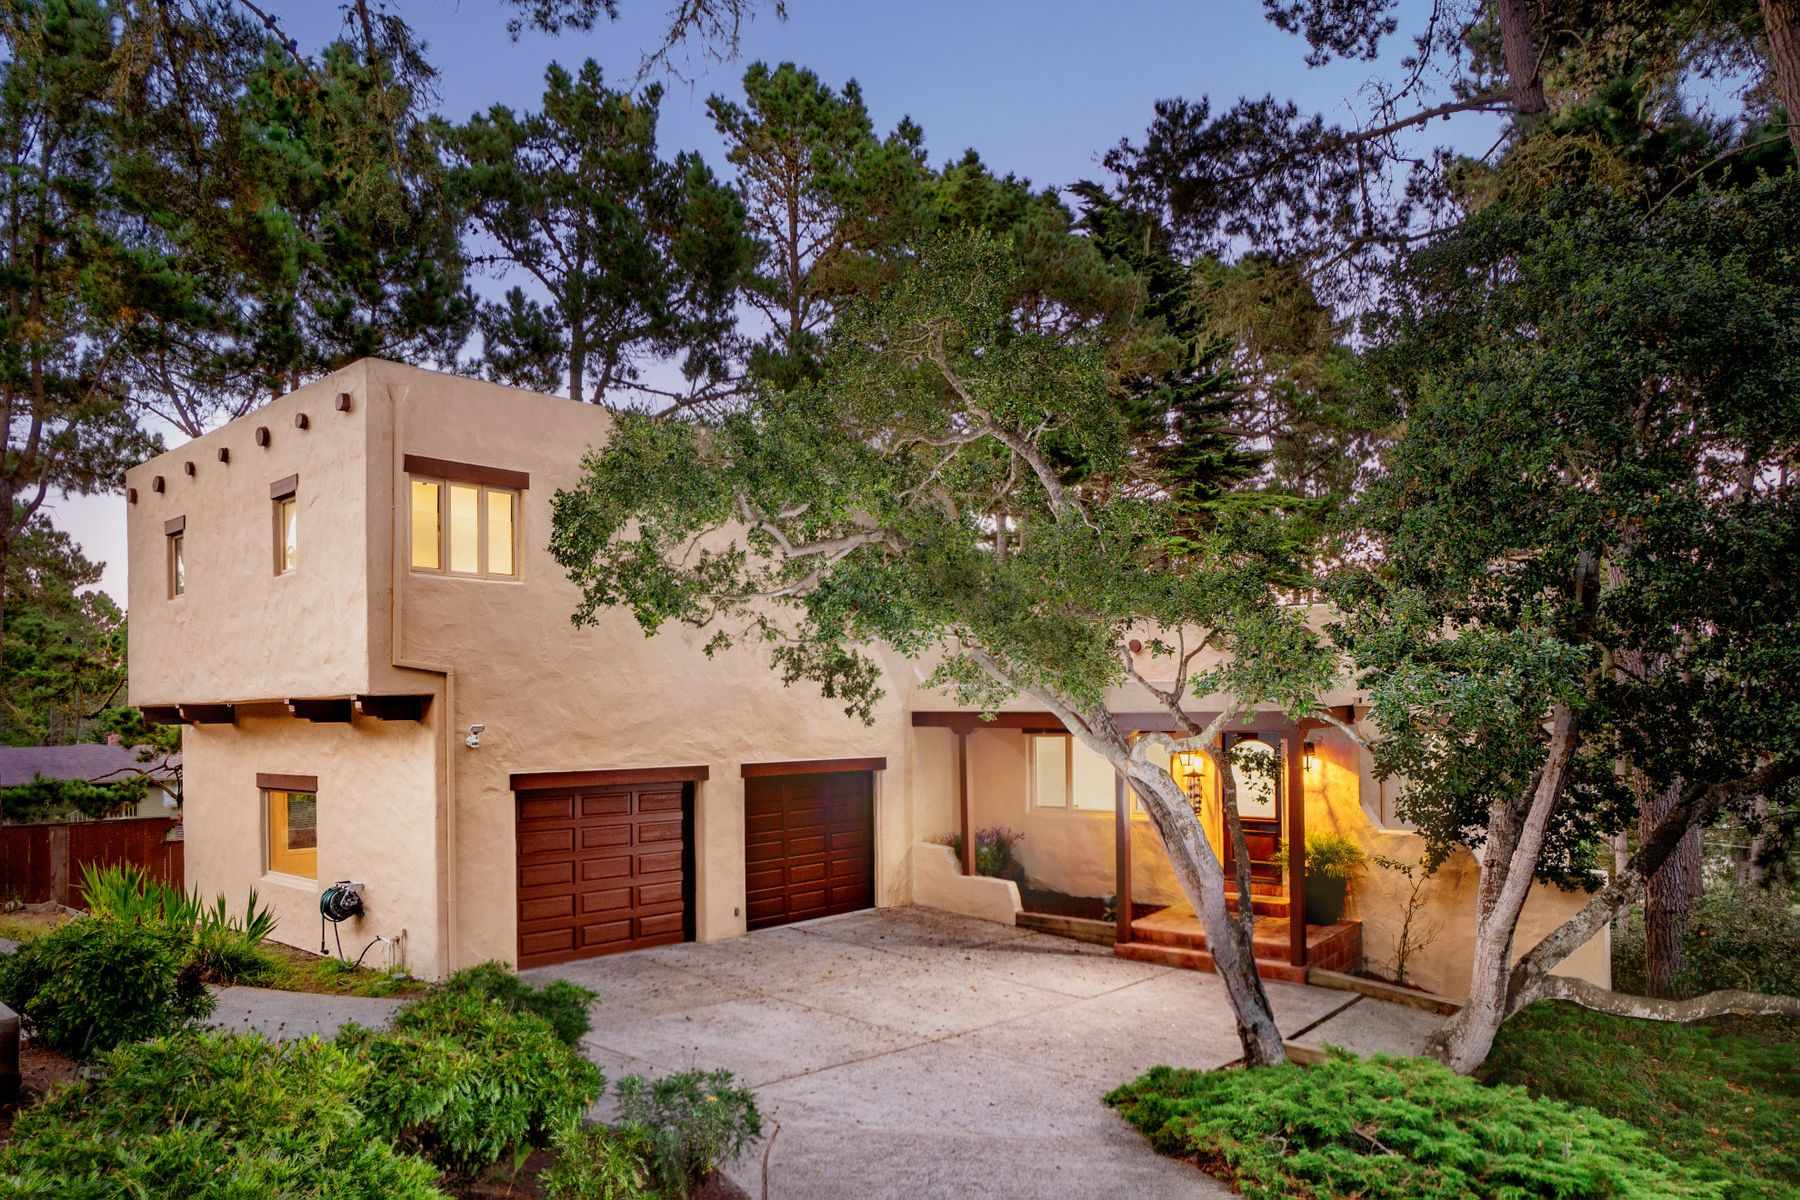 Single Family Homes for Sale at View of the Bay with Southwest Charm 2 Windsor Rise Monterey, California 93940 United States